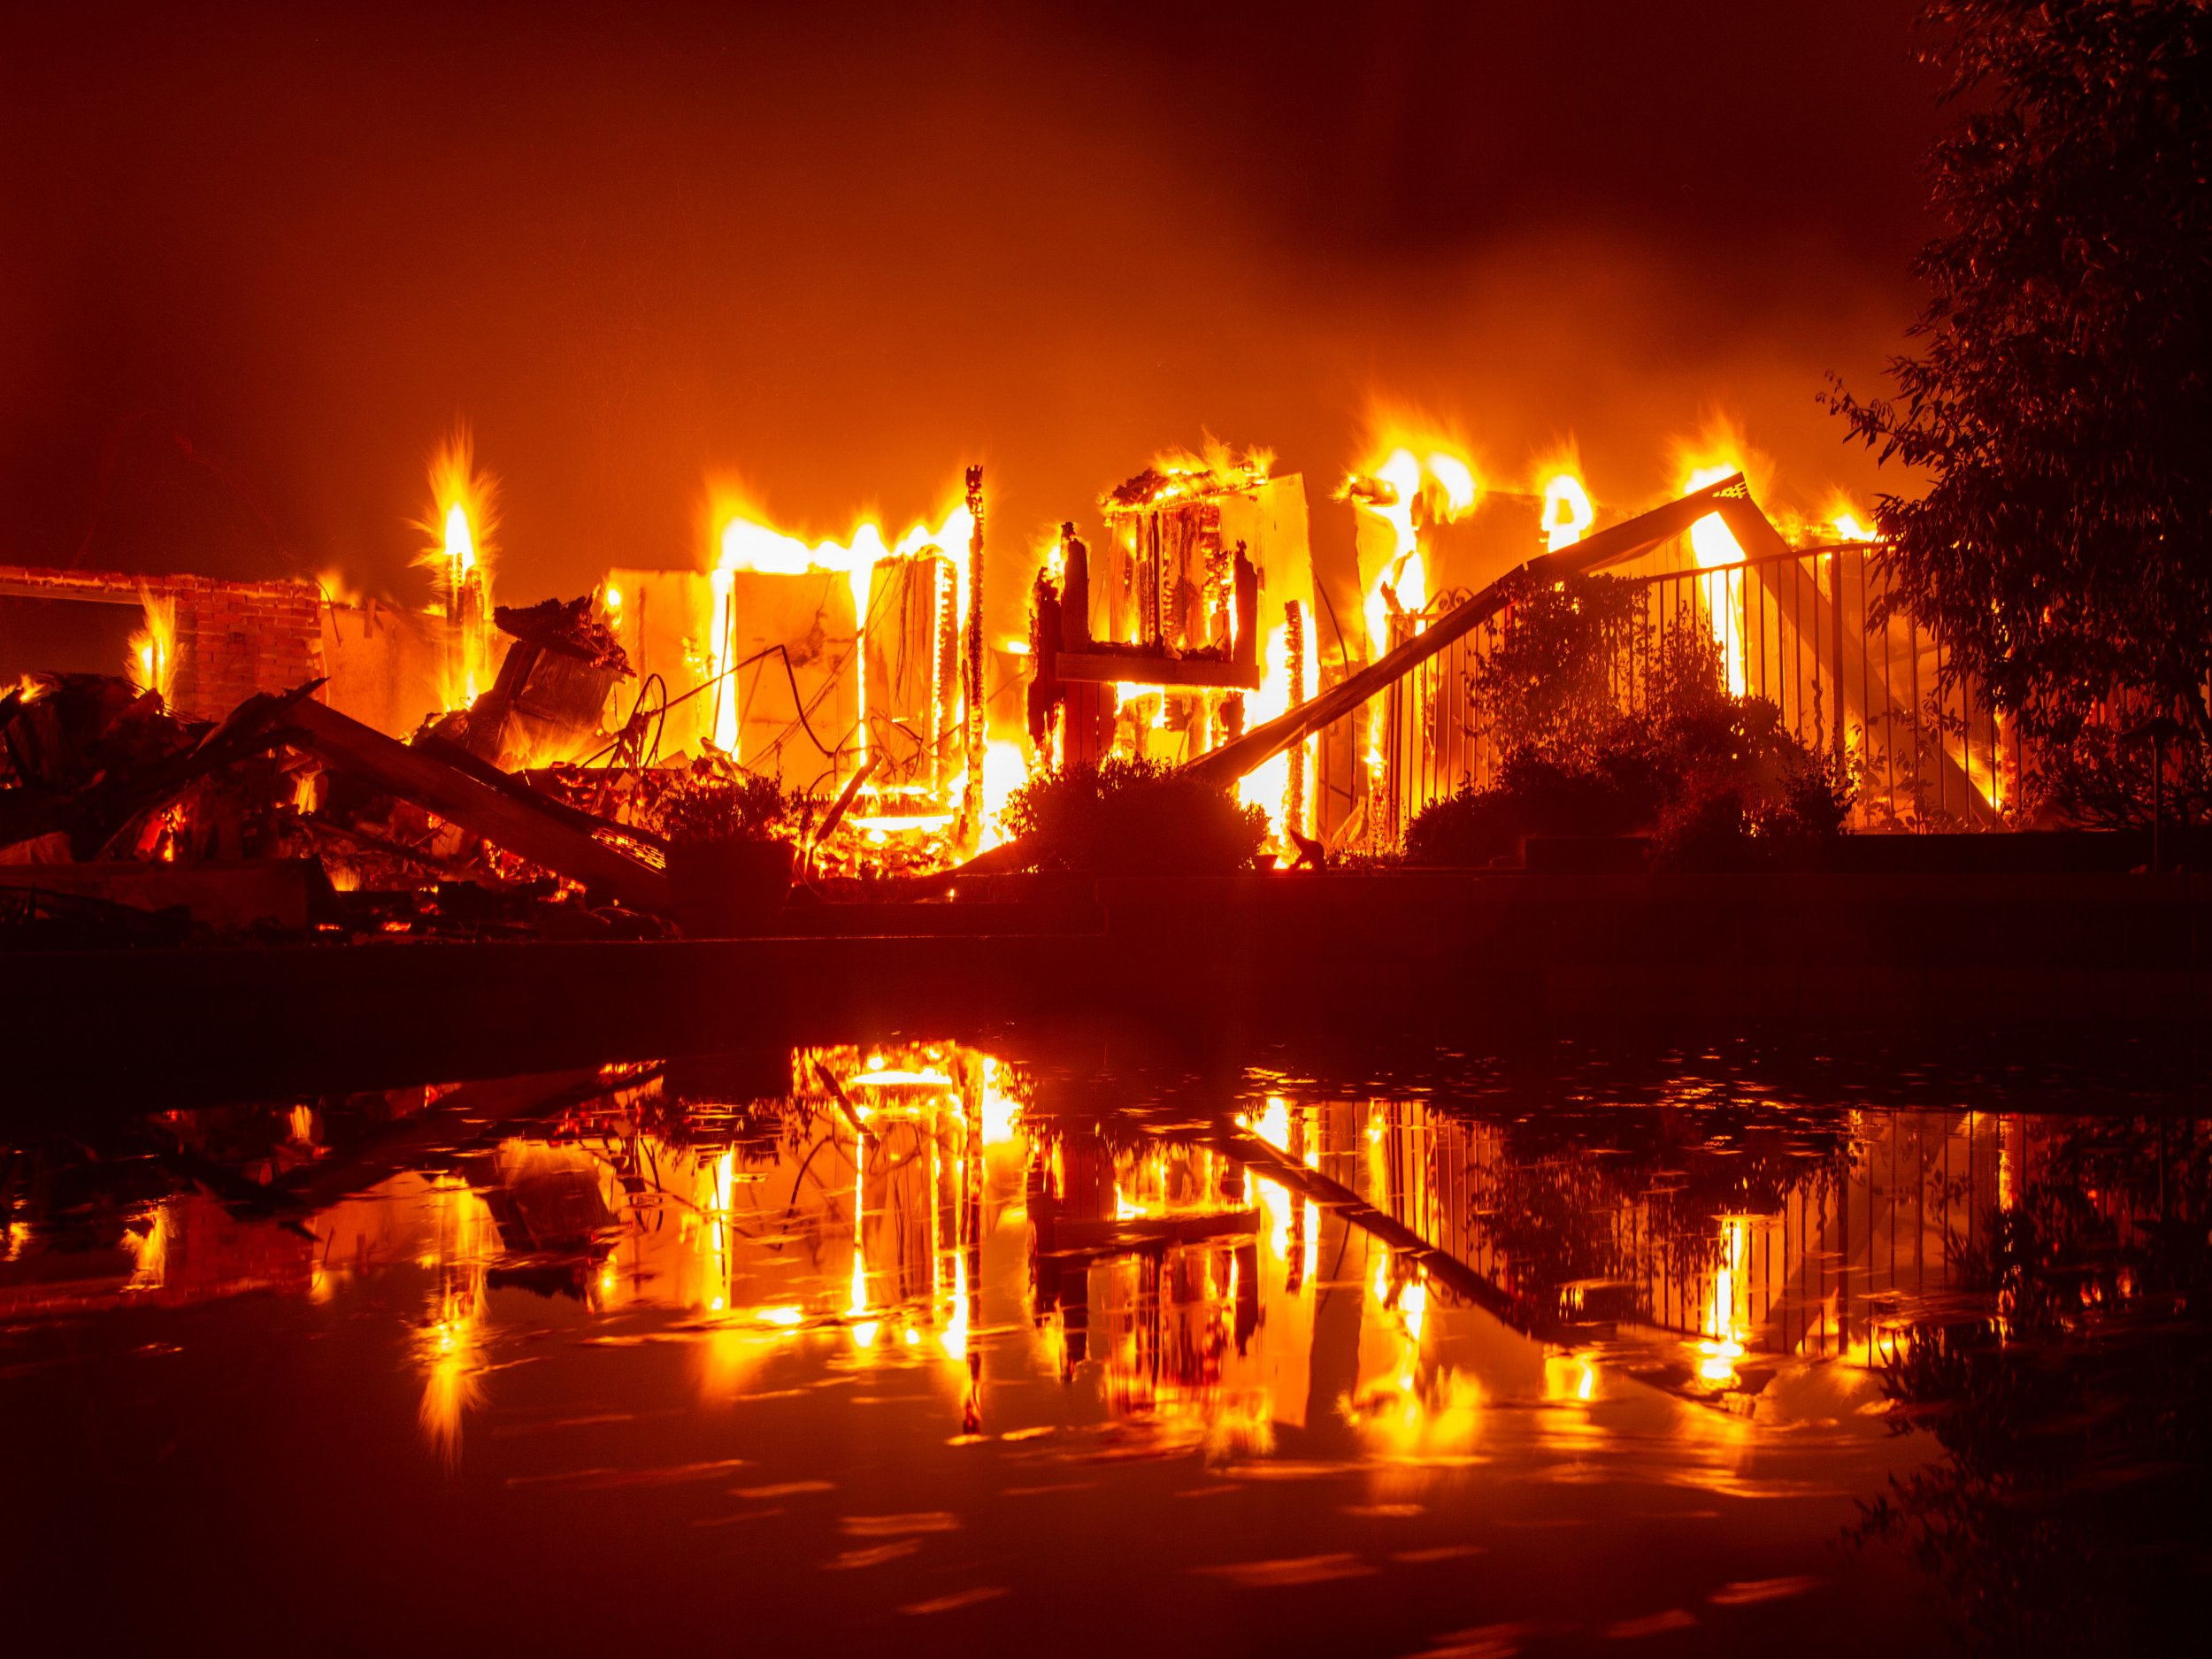 A burning home is reflected in a pool during the Carr fire in Redding, California on July 27, 2018. One firefighter has died and at least two others have been injured as wind-whipped flames tore through the region. / AFP PHOTO / JOSH EDELSONJOSH EDELSON/AFP/Getty Images